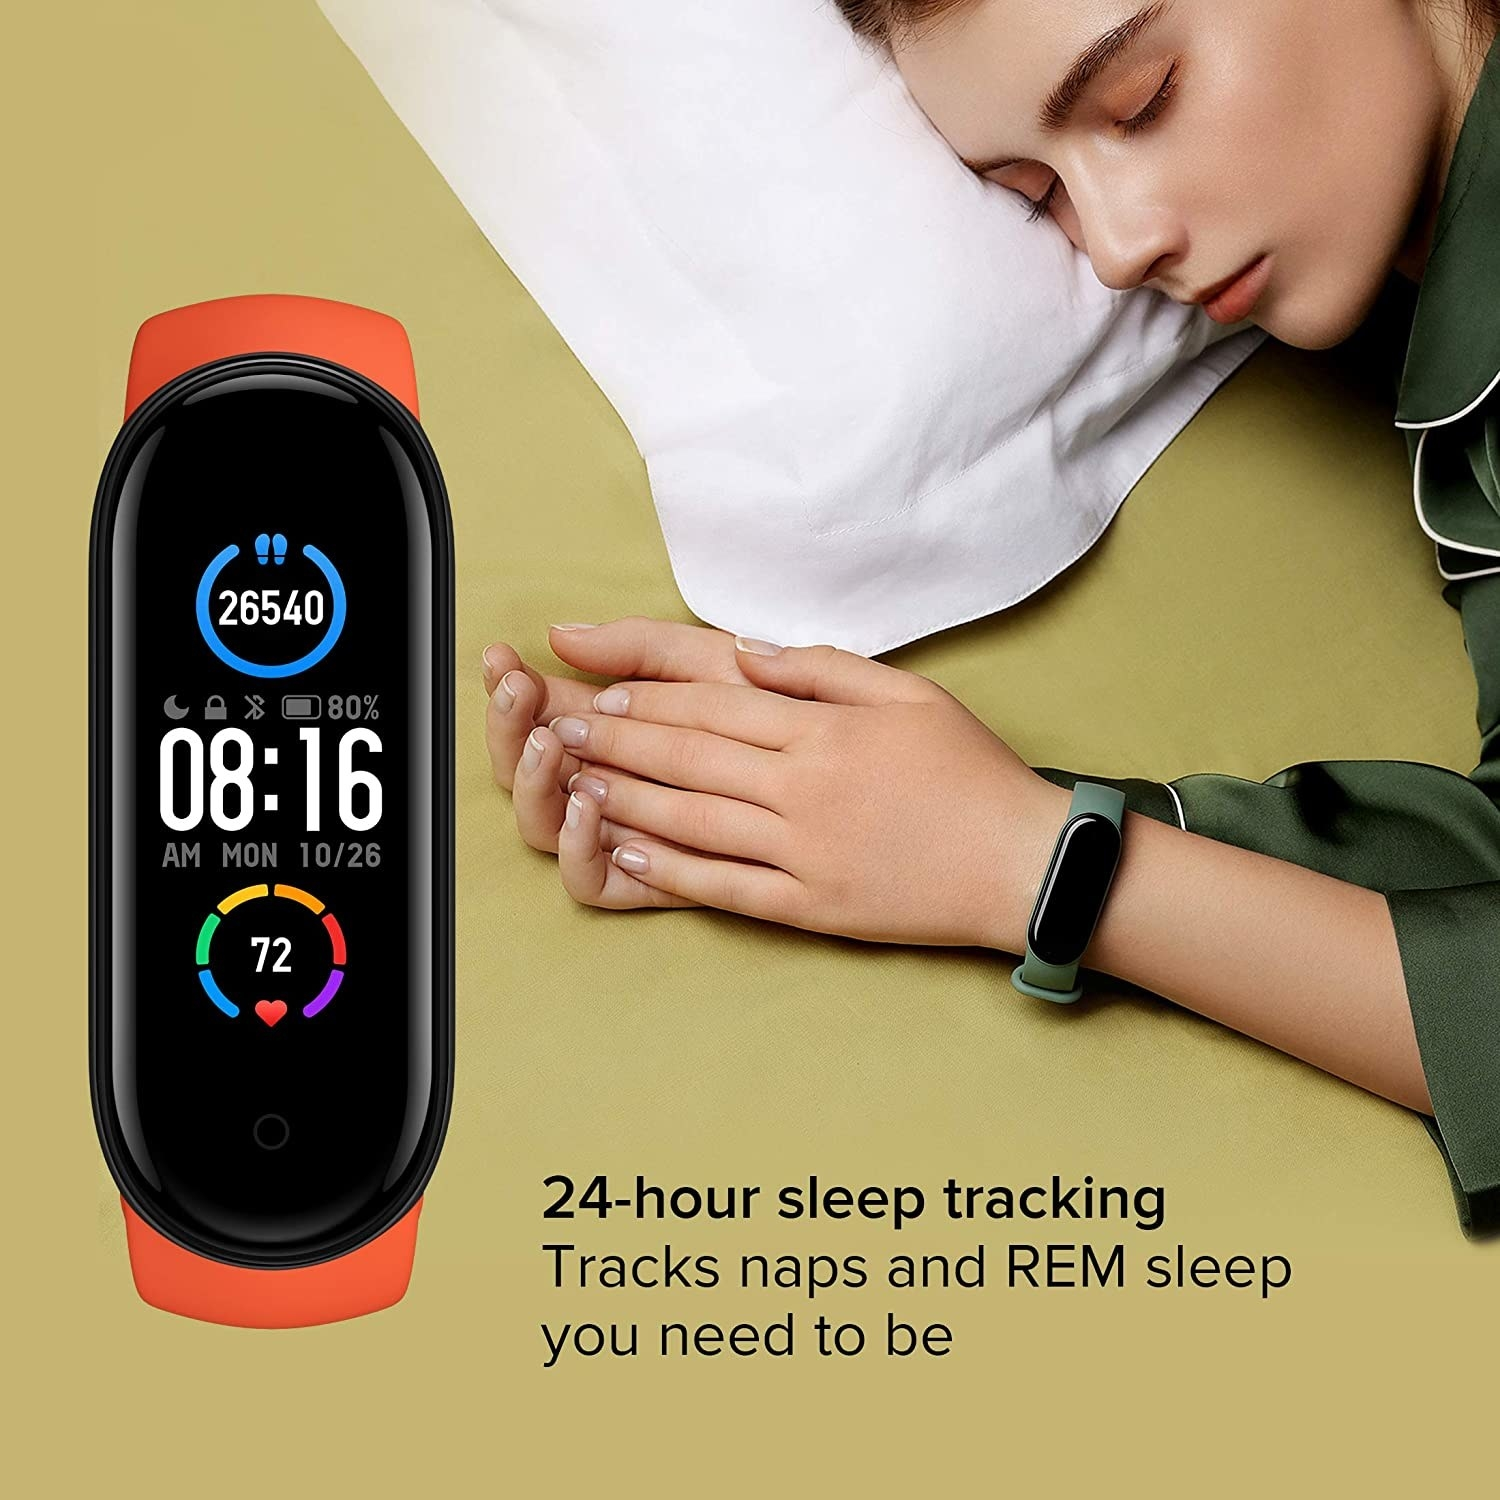 The watch, and a person wearing the watch while they are asleep.